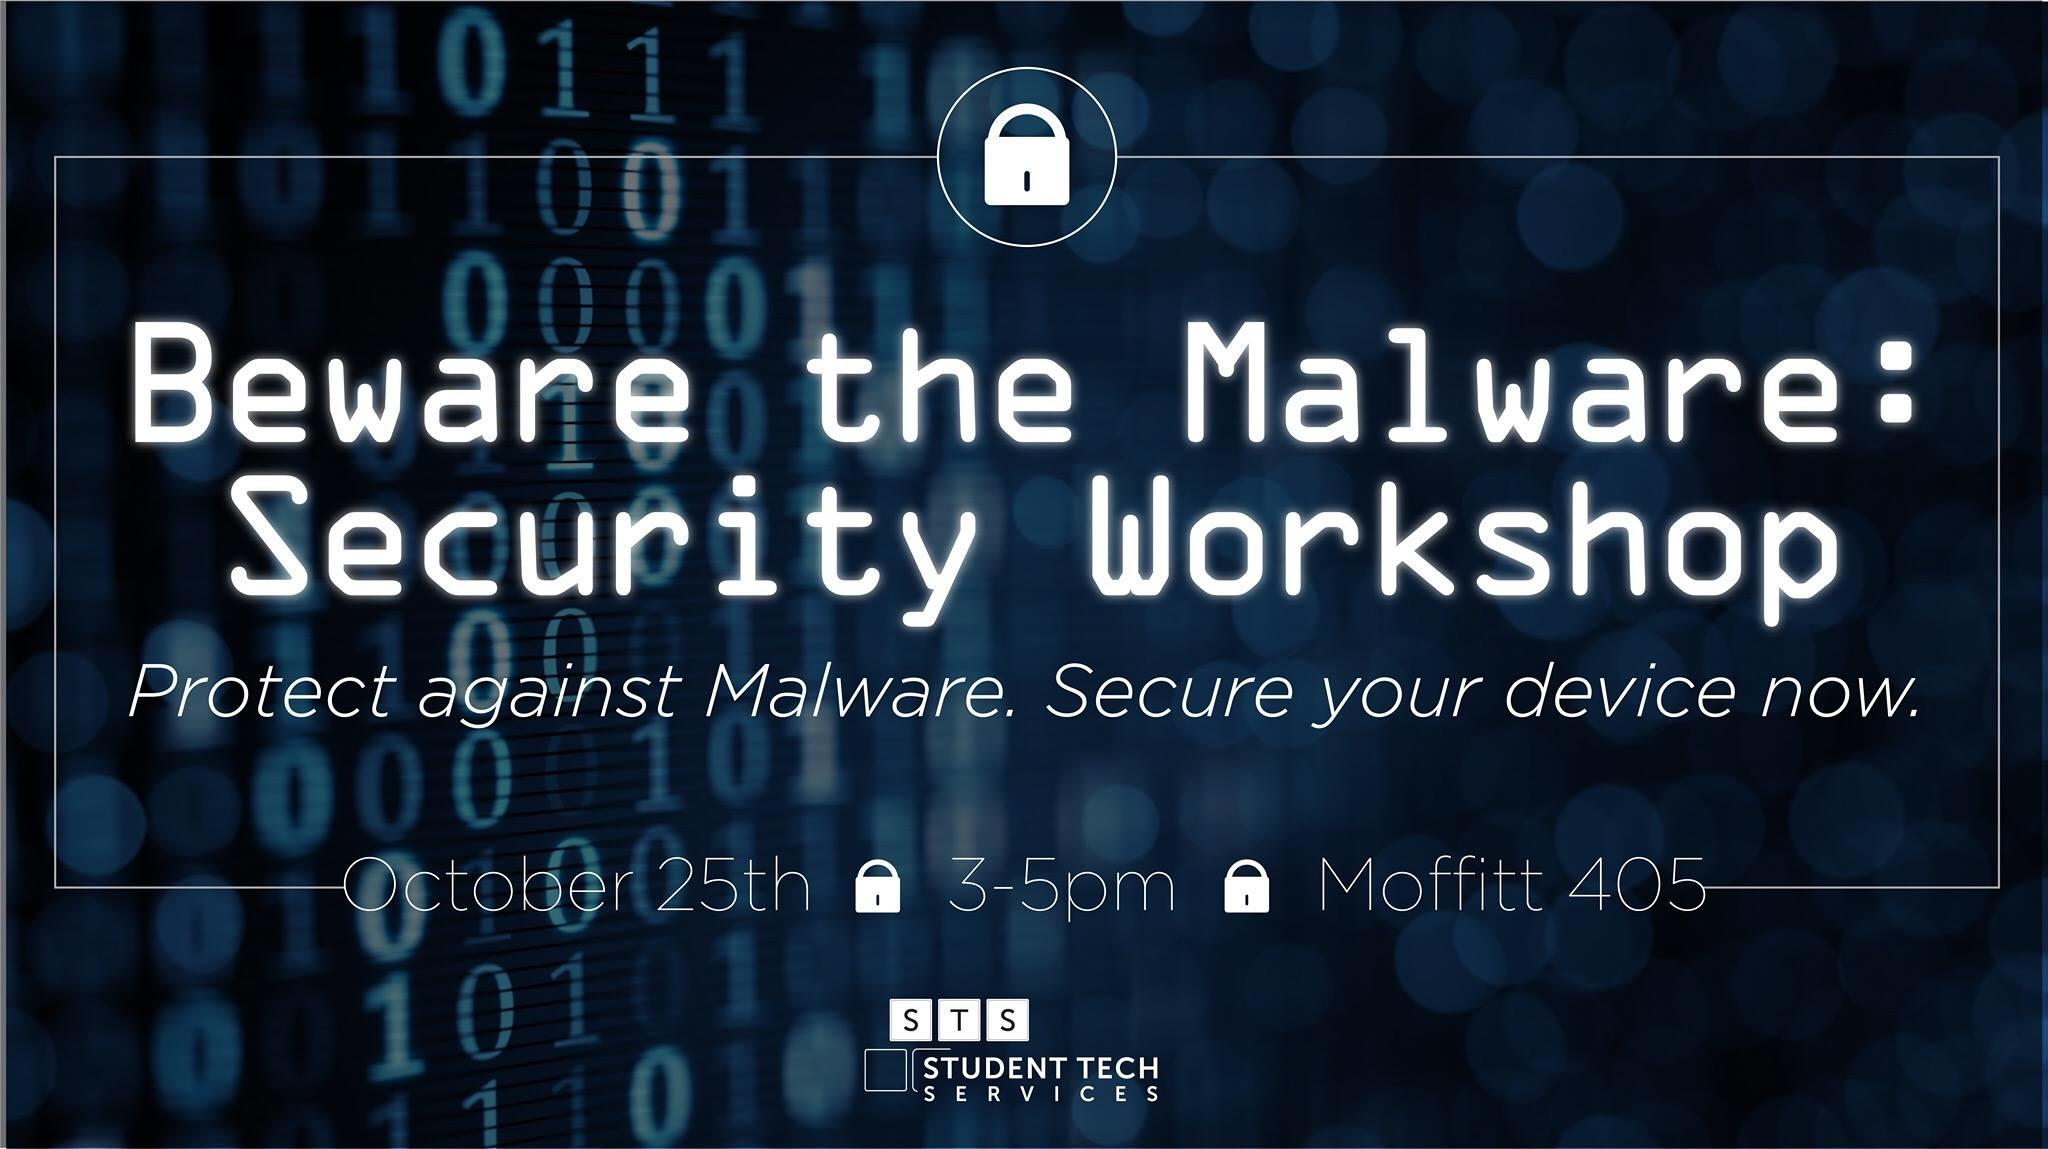 Security Workshop. Protect against malware, Secure your device now. October 25th 3-5pm Moffitt 405